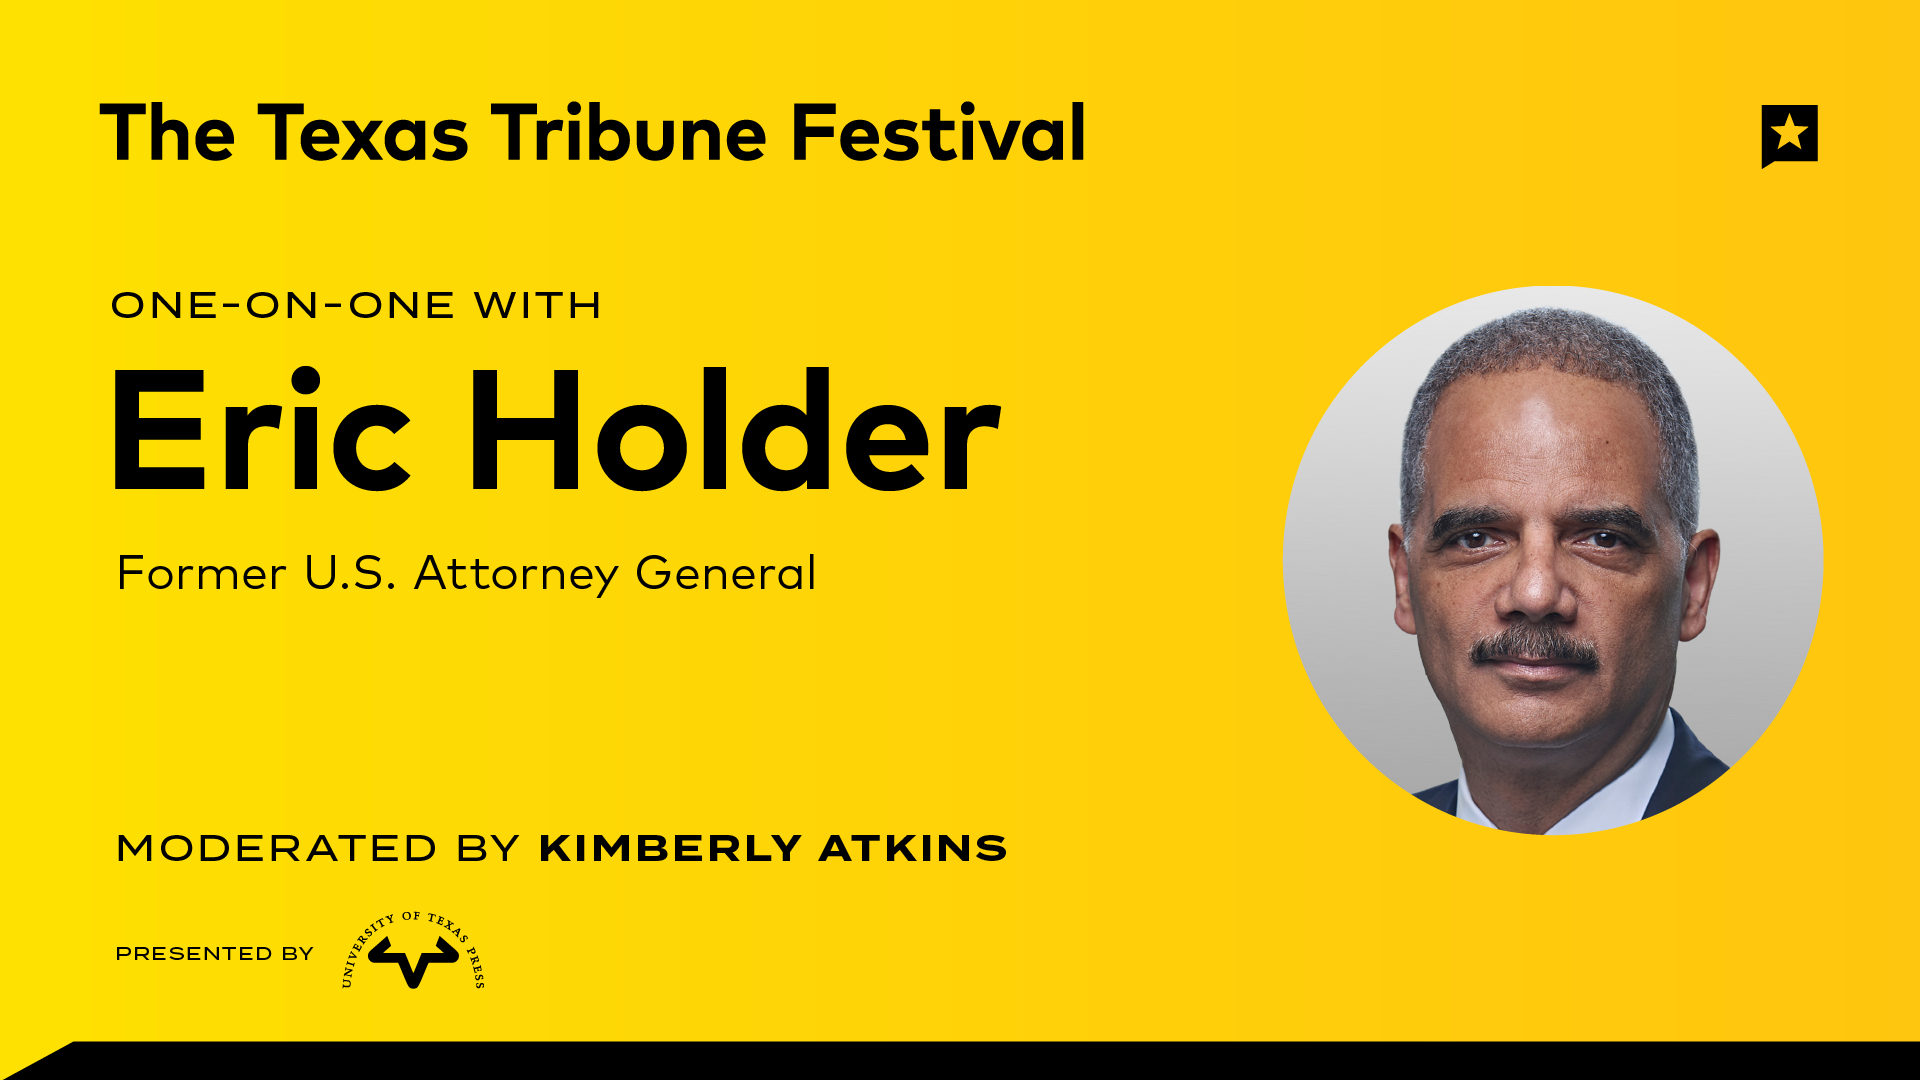 One-on-One with Eric Holder